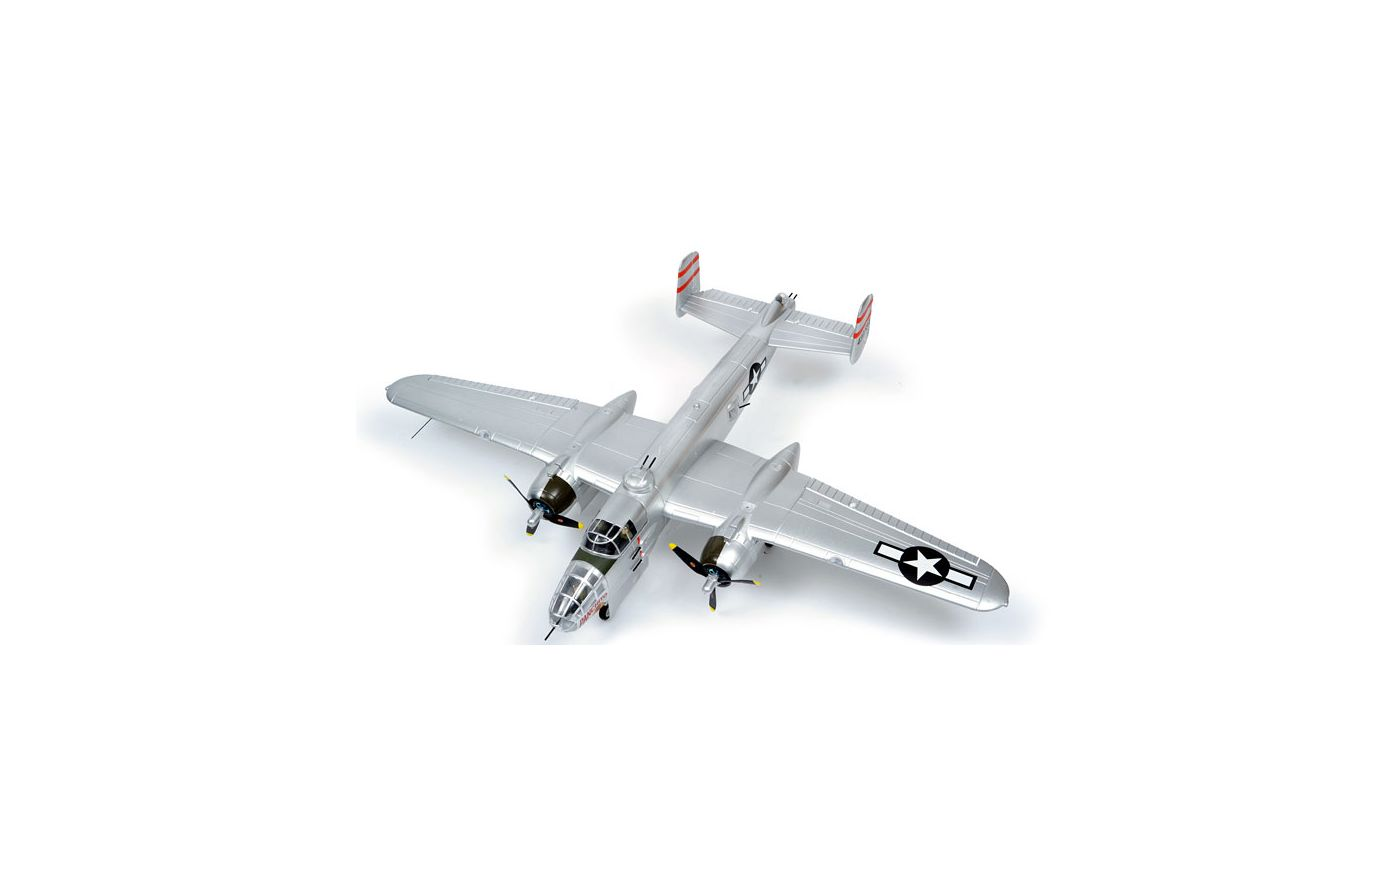 Image for B-25 Mitchell PNP, 1470mm: Silver from Force RC